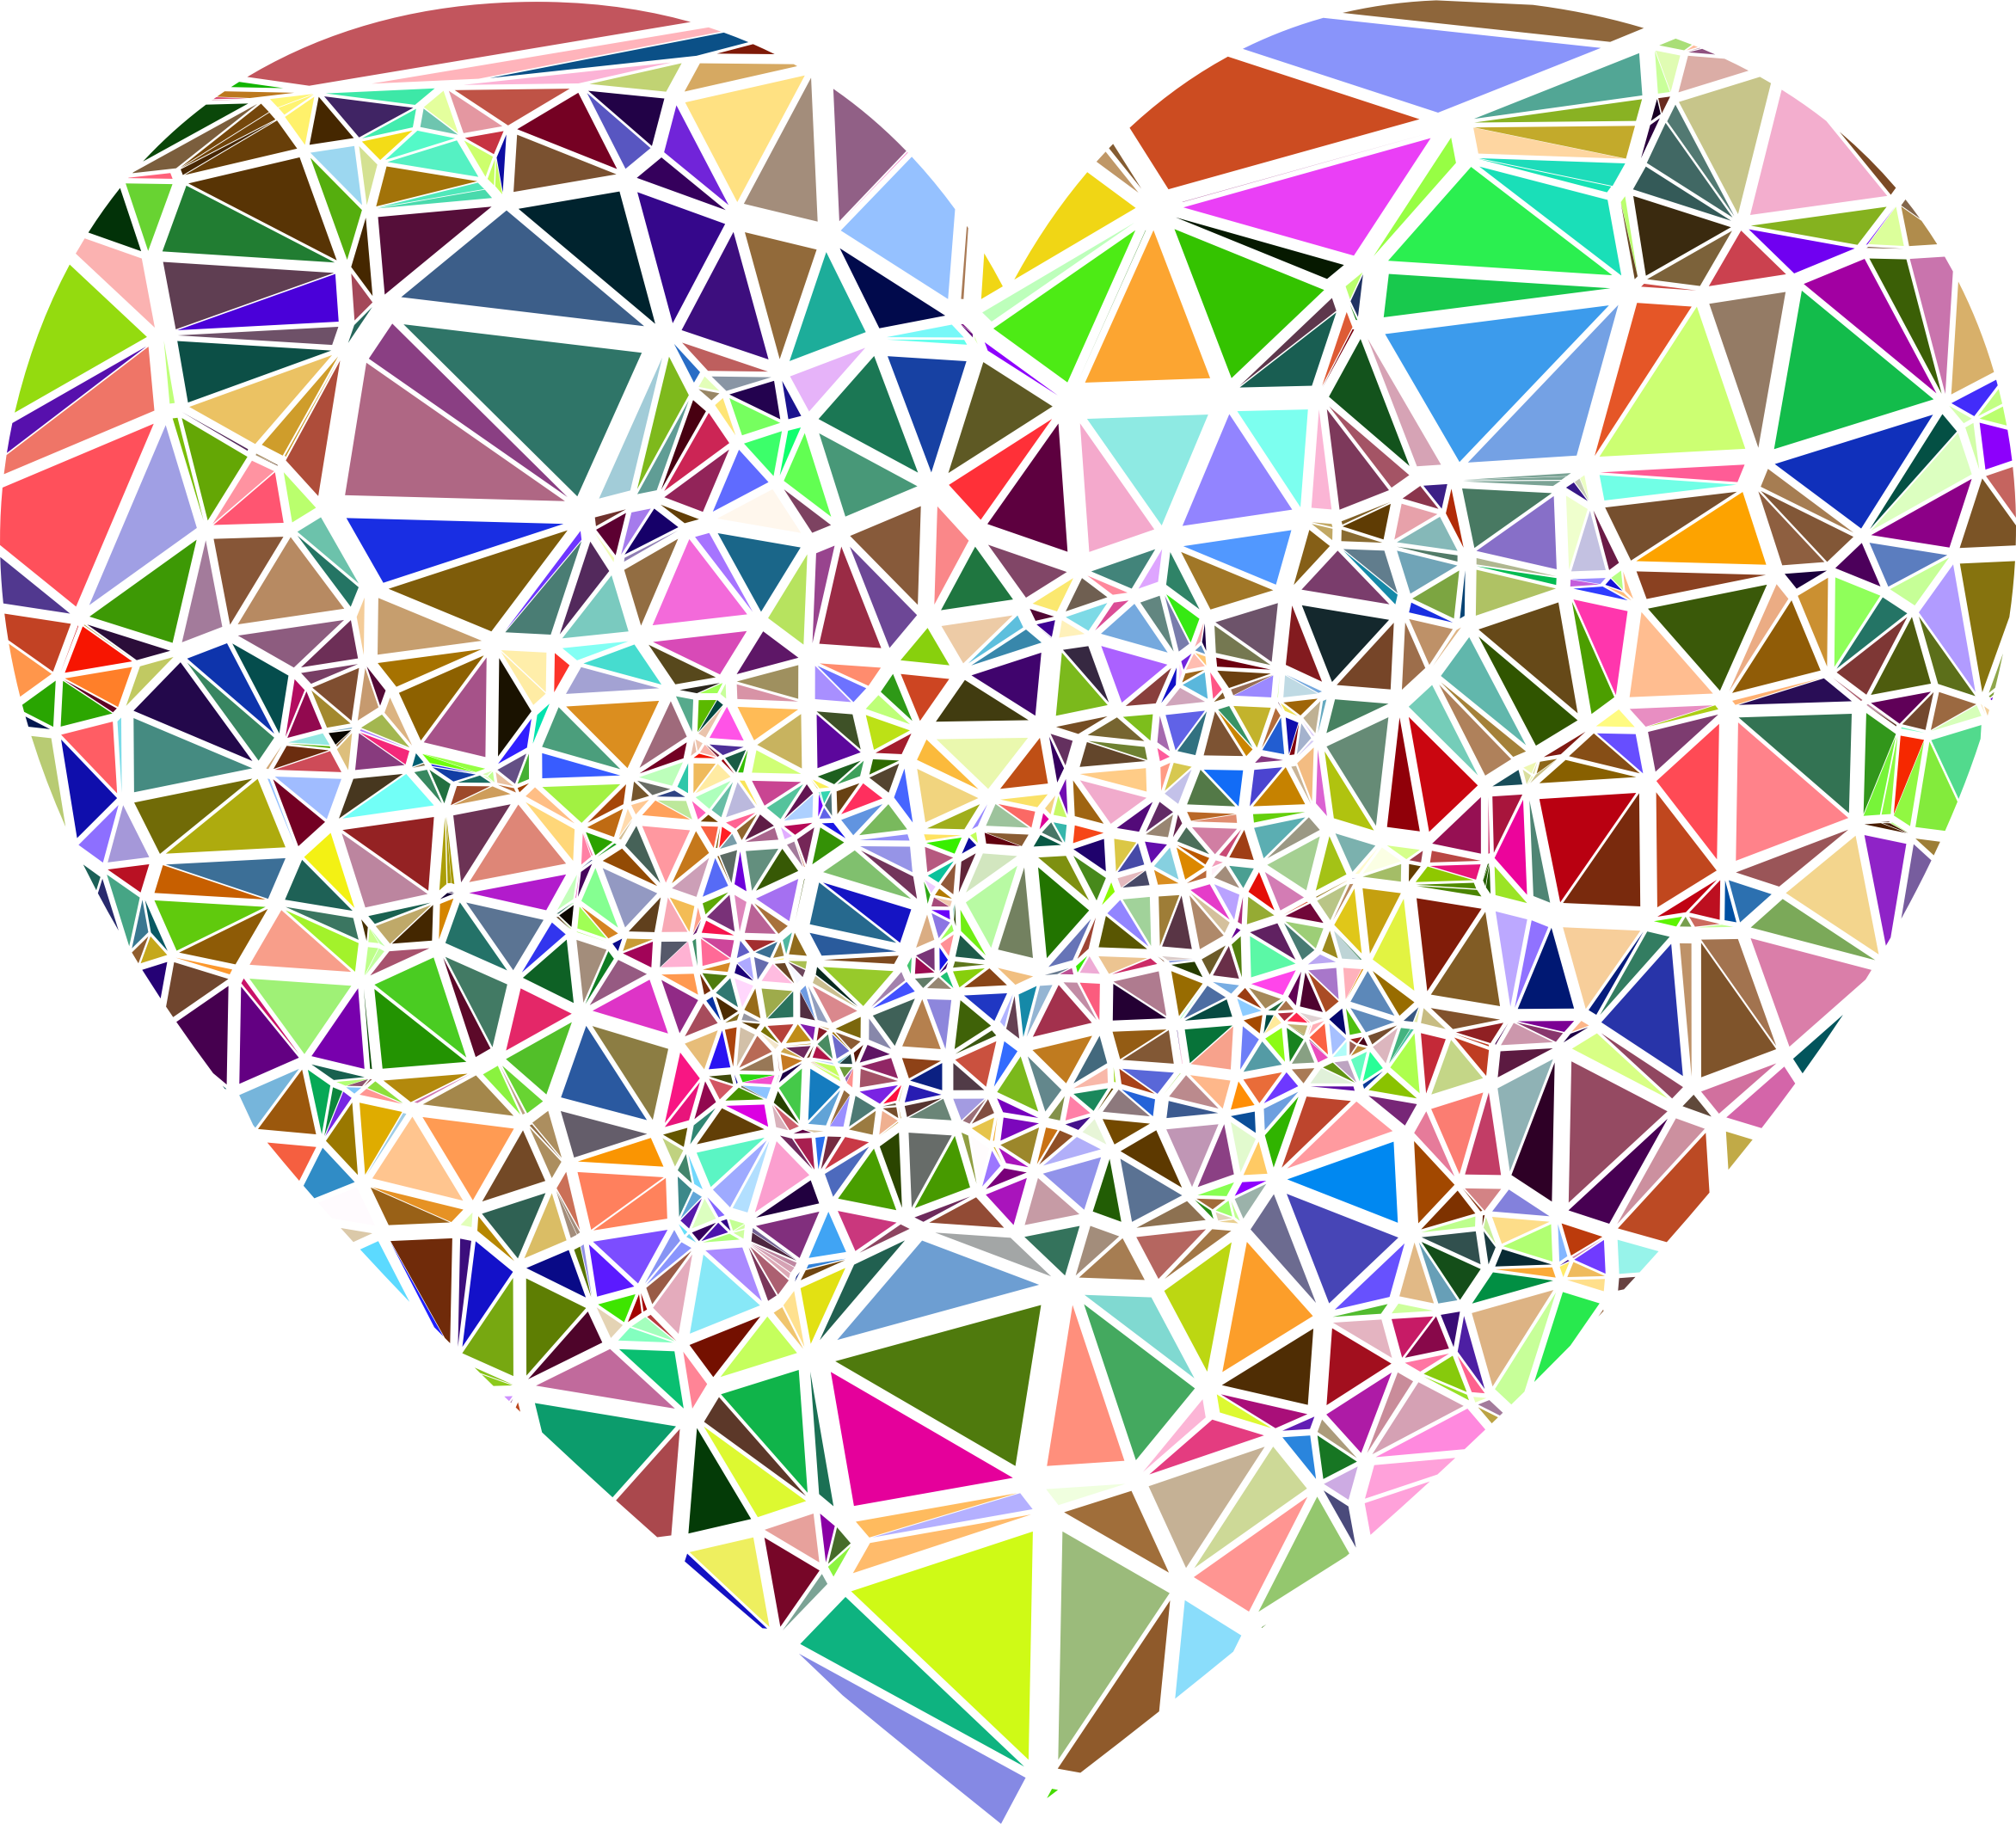 Shattered heart clipart vector black and white library Clipart - Low Poly Shattered Heart vector black and white library